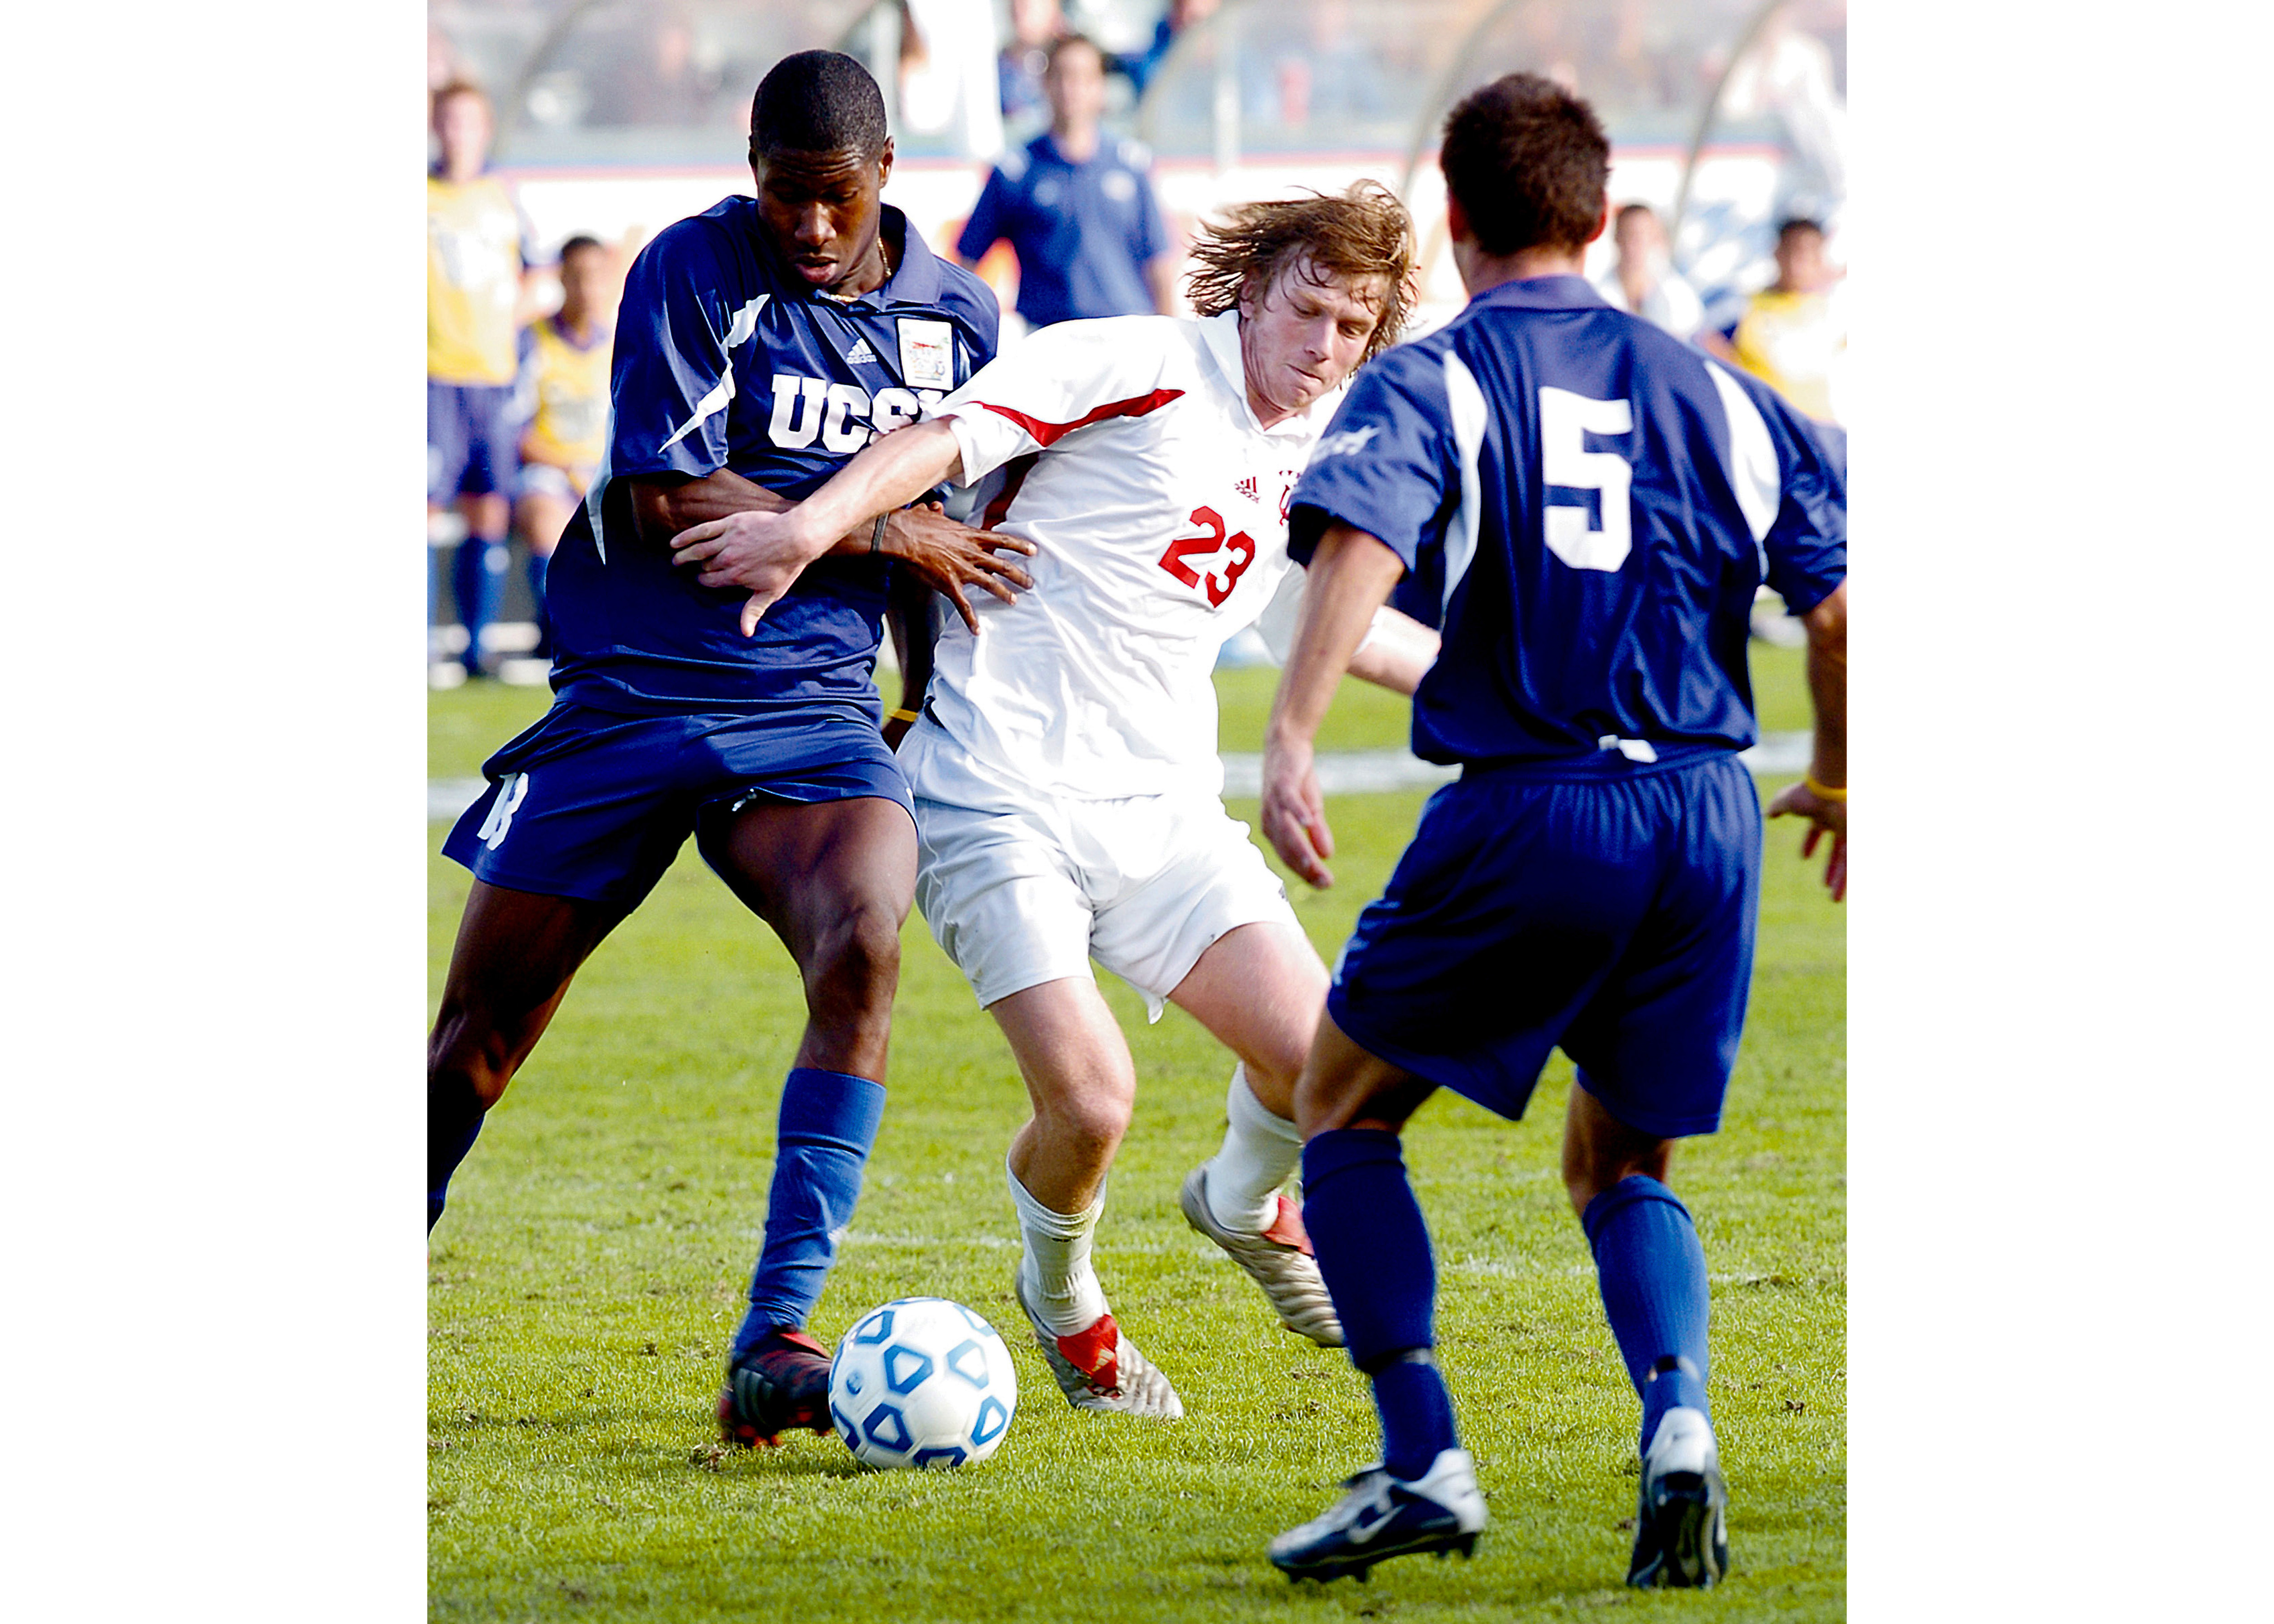 e3be430b1b1 Continuing the legacy: The story of IU men's soccer's 2004 National  Championship